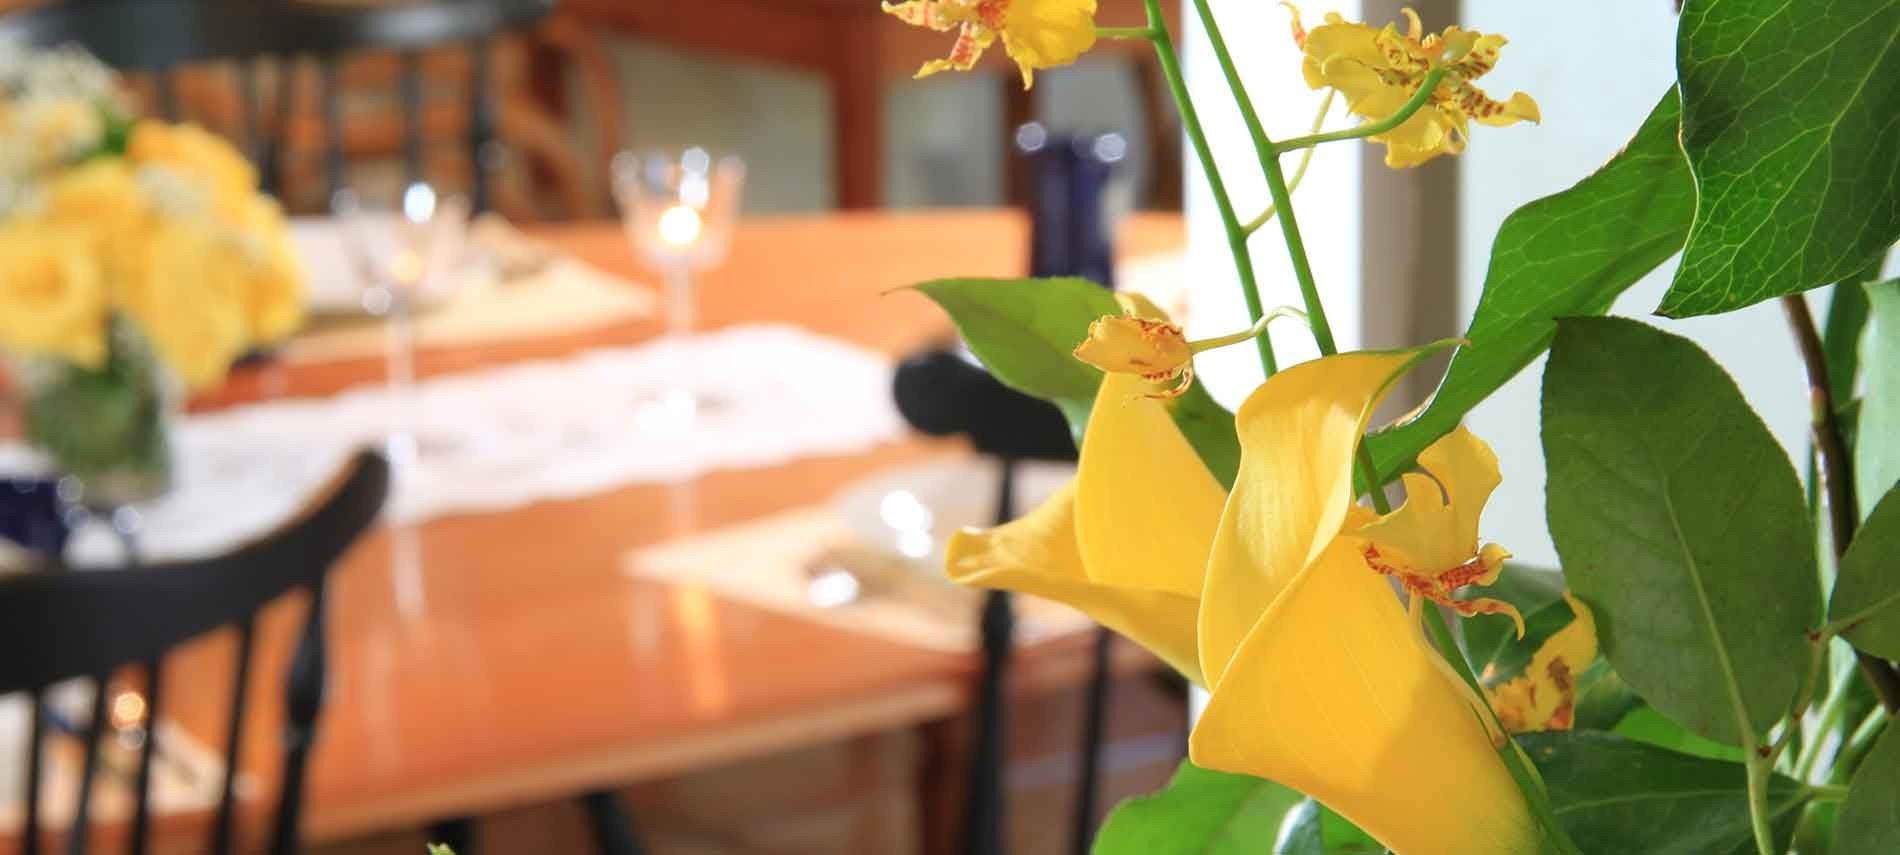 Yellow flowers close up, dining table behind it